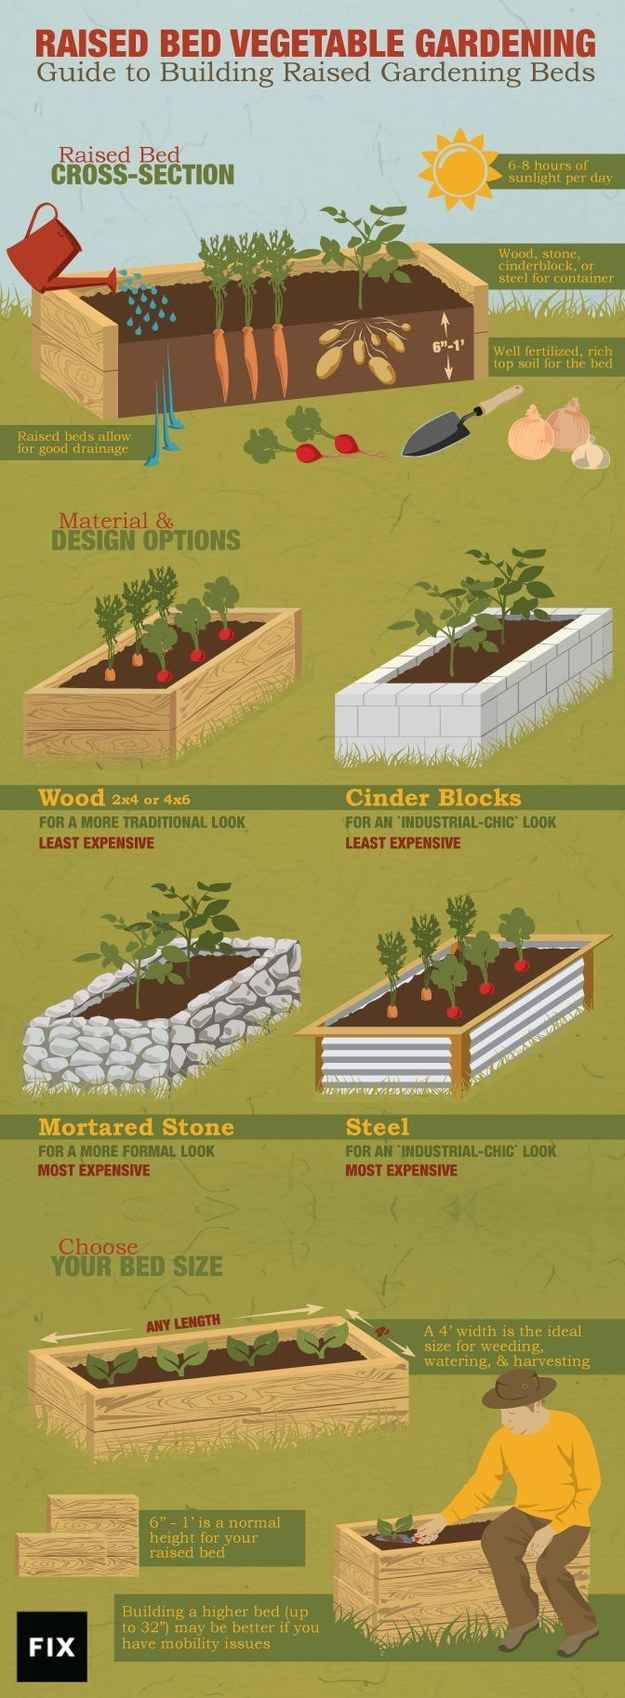 hight resolution of raised gardening beds keep vegetables away from contaminated soil can deter some pests and are easier on backs and knees here s some information about how